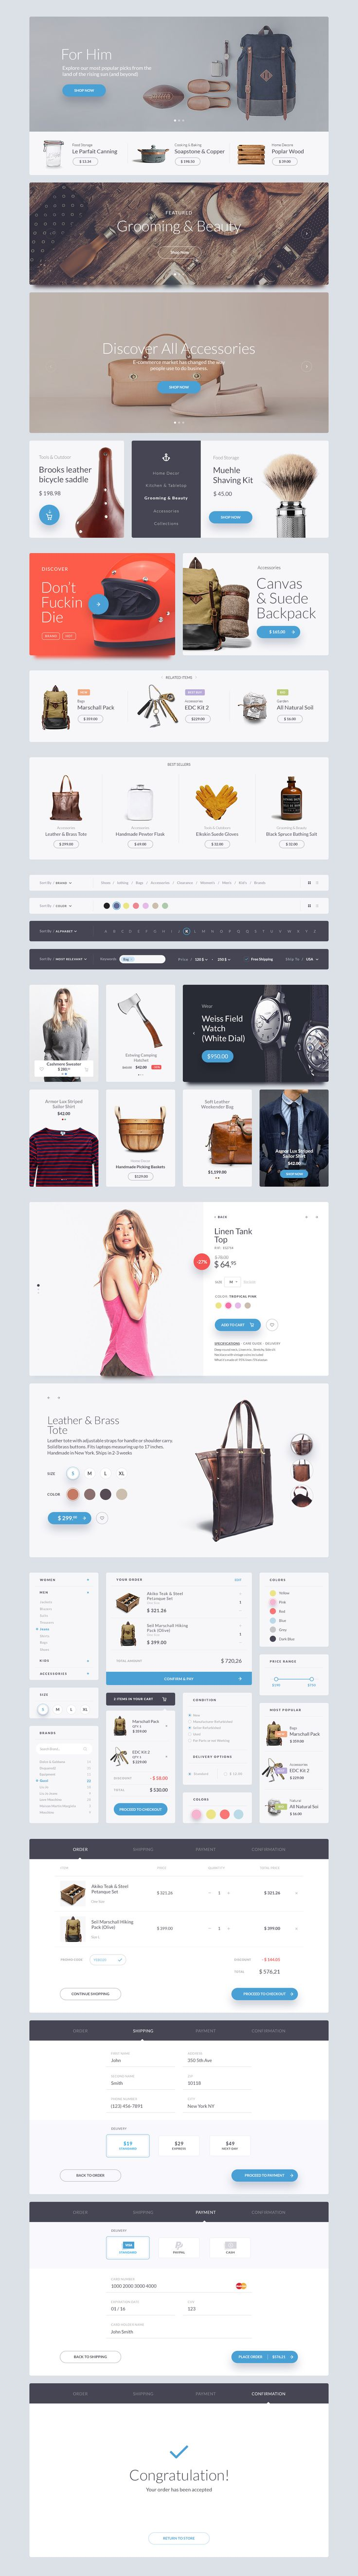 Kauf is a UI Web Kit crafted in Photoshop and designed for help you in your next awesome web project. This pack comes with 200+ design elements vector based and 7 categories (Articles, Ecommerce, Forms, Headers, Navigations, Widgets, Elements) to give a s… #ui